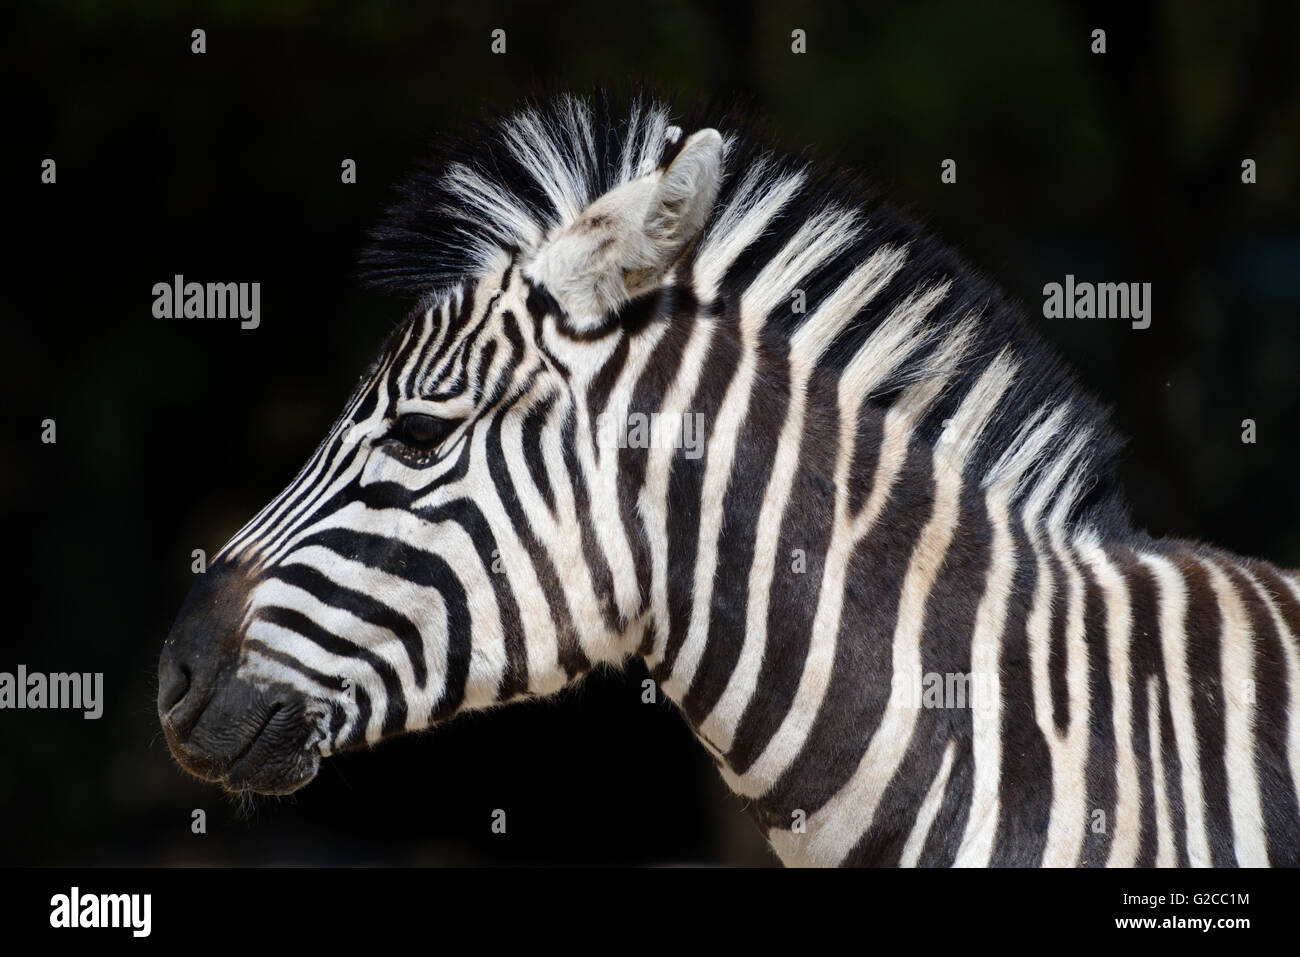 Portrait of Burchell's Zebra (Equus quagga burchellii) - Stock Image